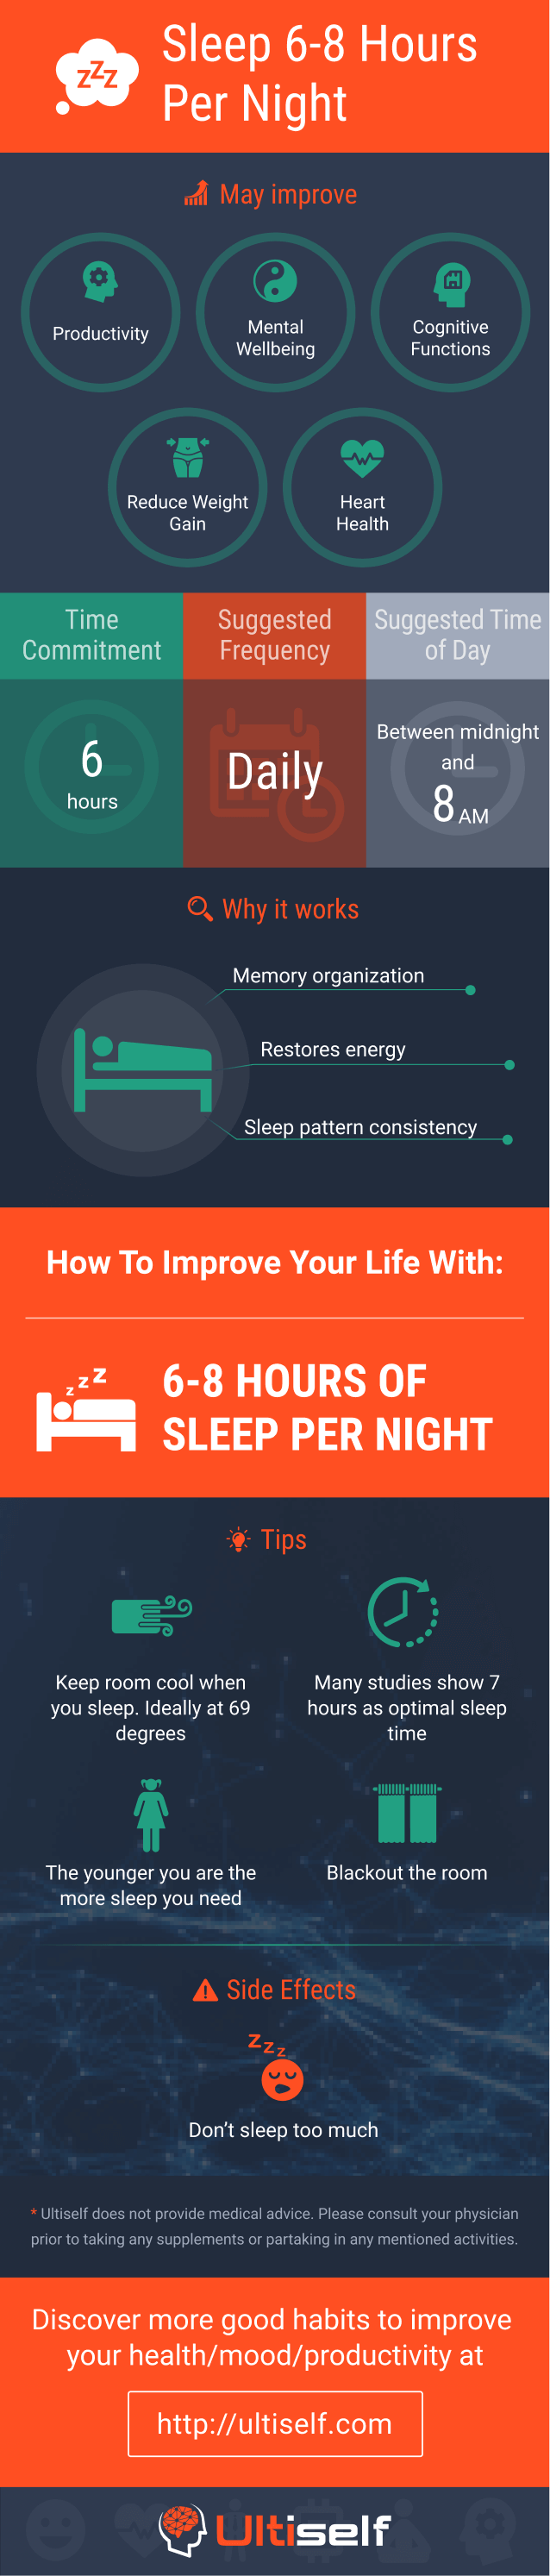 Sleep between 6-8 hours per night infographic